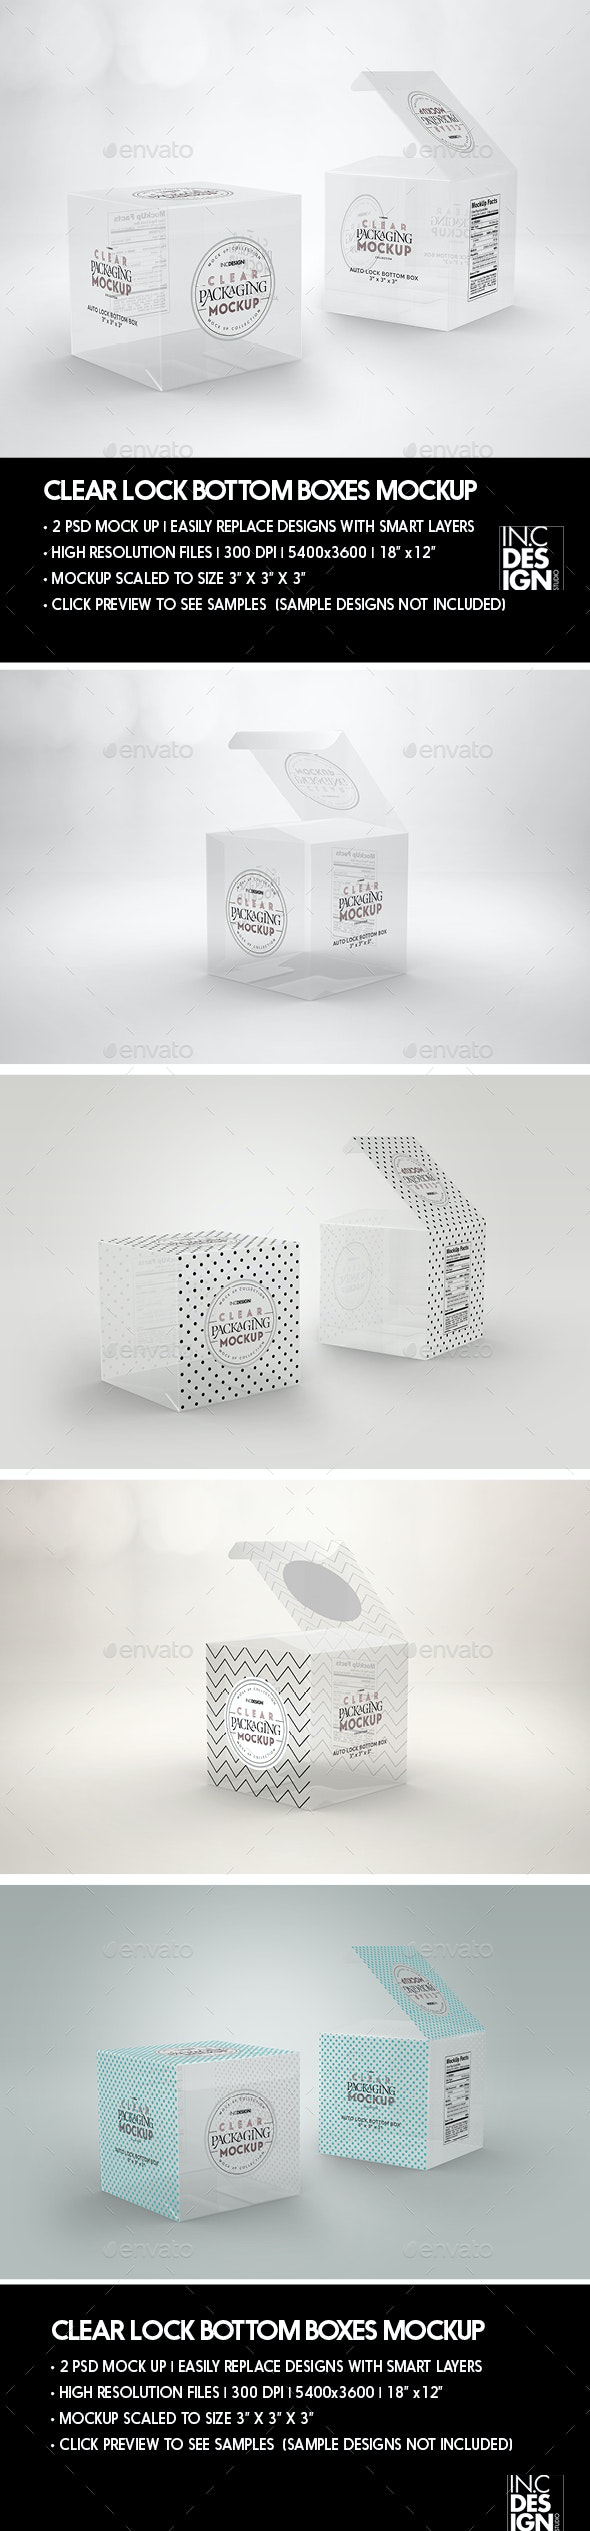 Clear Lock Bottom Boxes Packaging Mockup - Packaging Product Mock-Ups